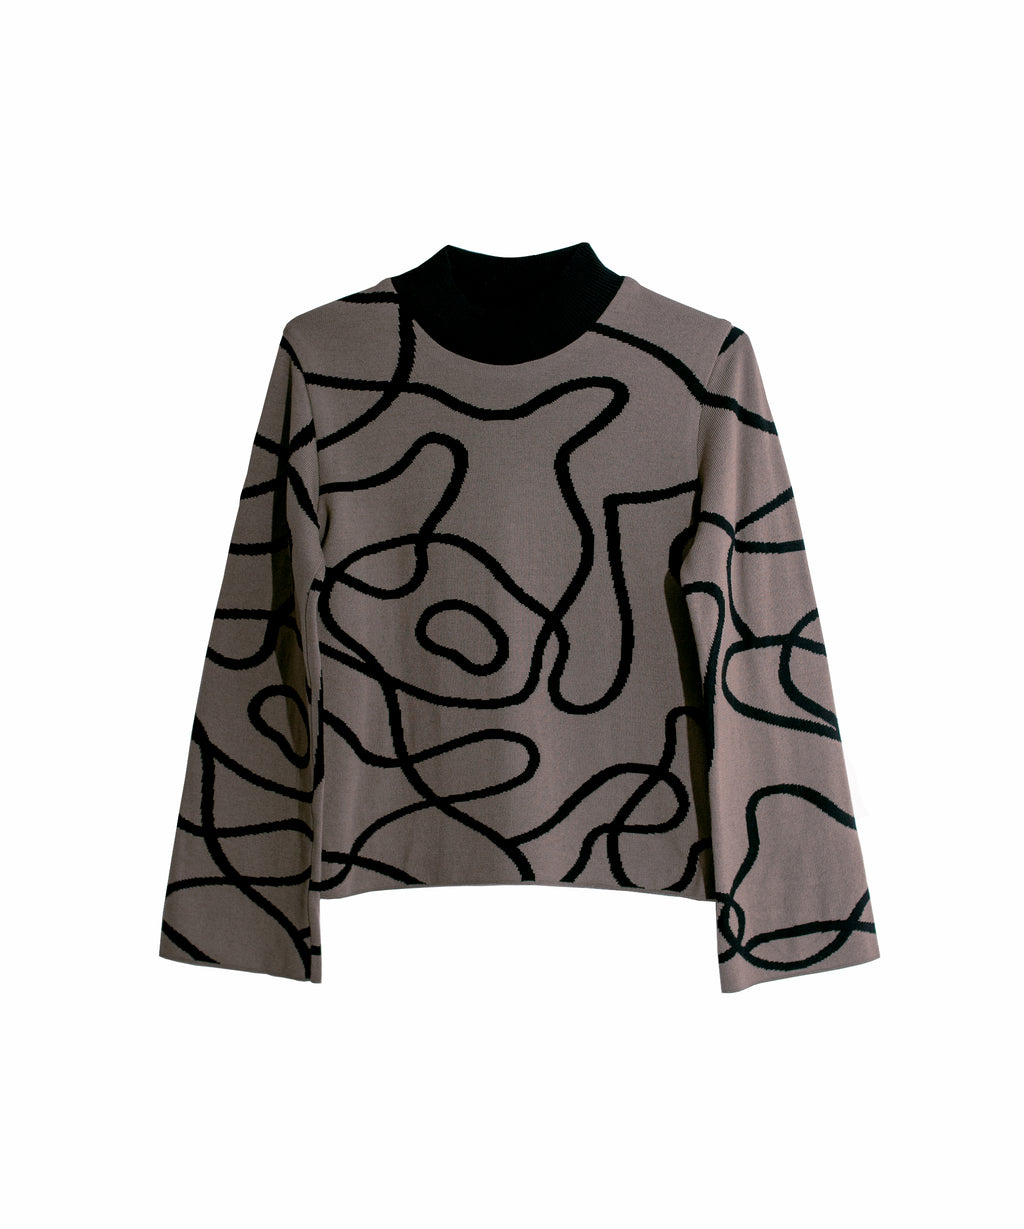 Reversible Jacquard Knit Jumper Brown/Black